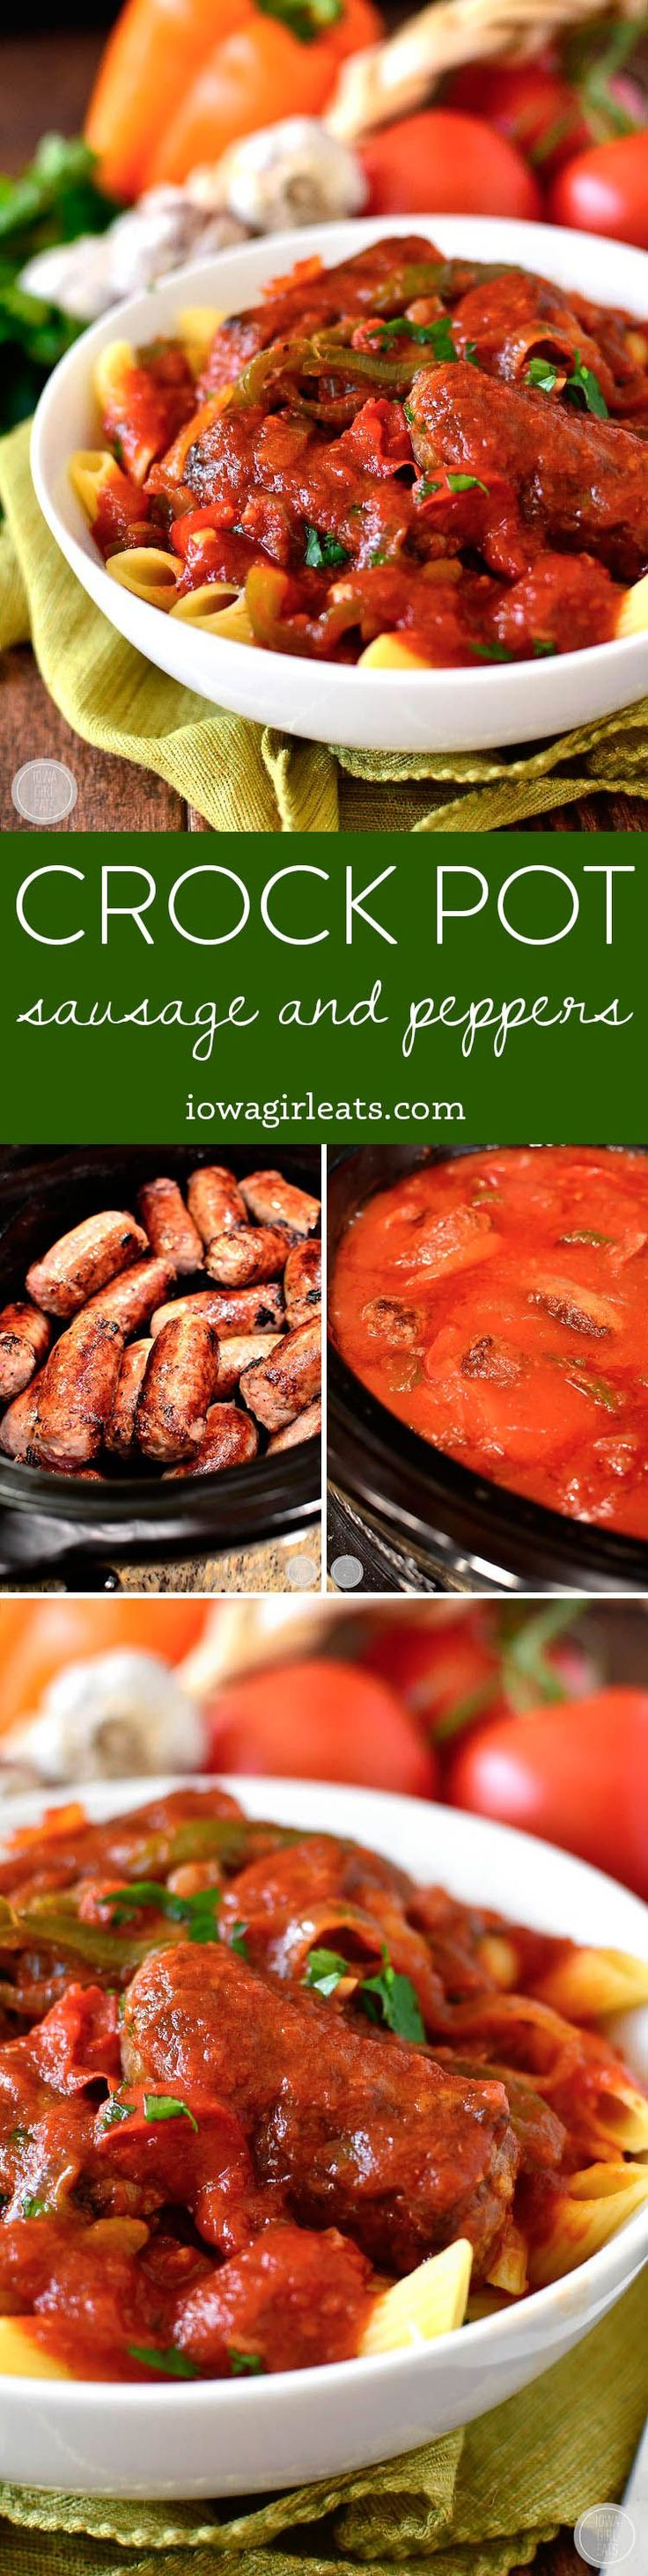 Crock Pot Sausage and Peppers - Perfect for game day, a cozy supper at home, or any night you're craving an Italian feast!